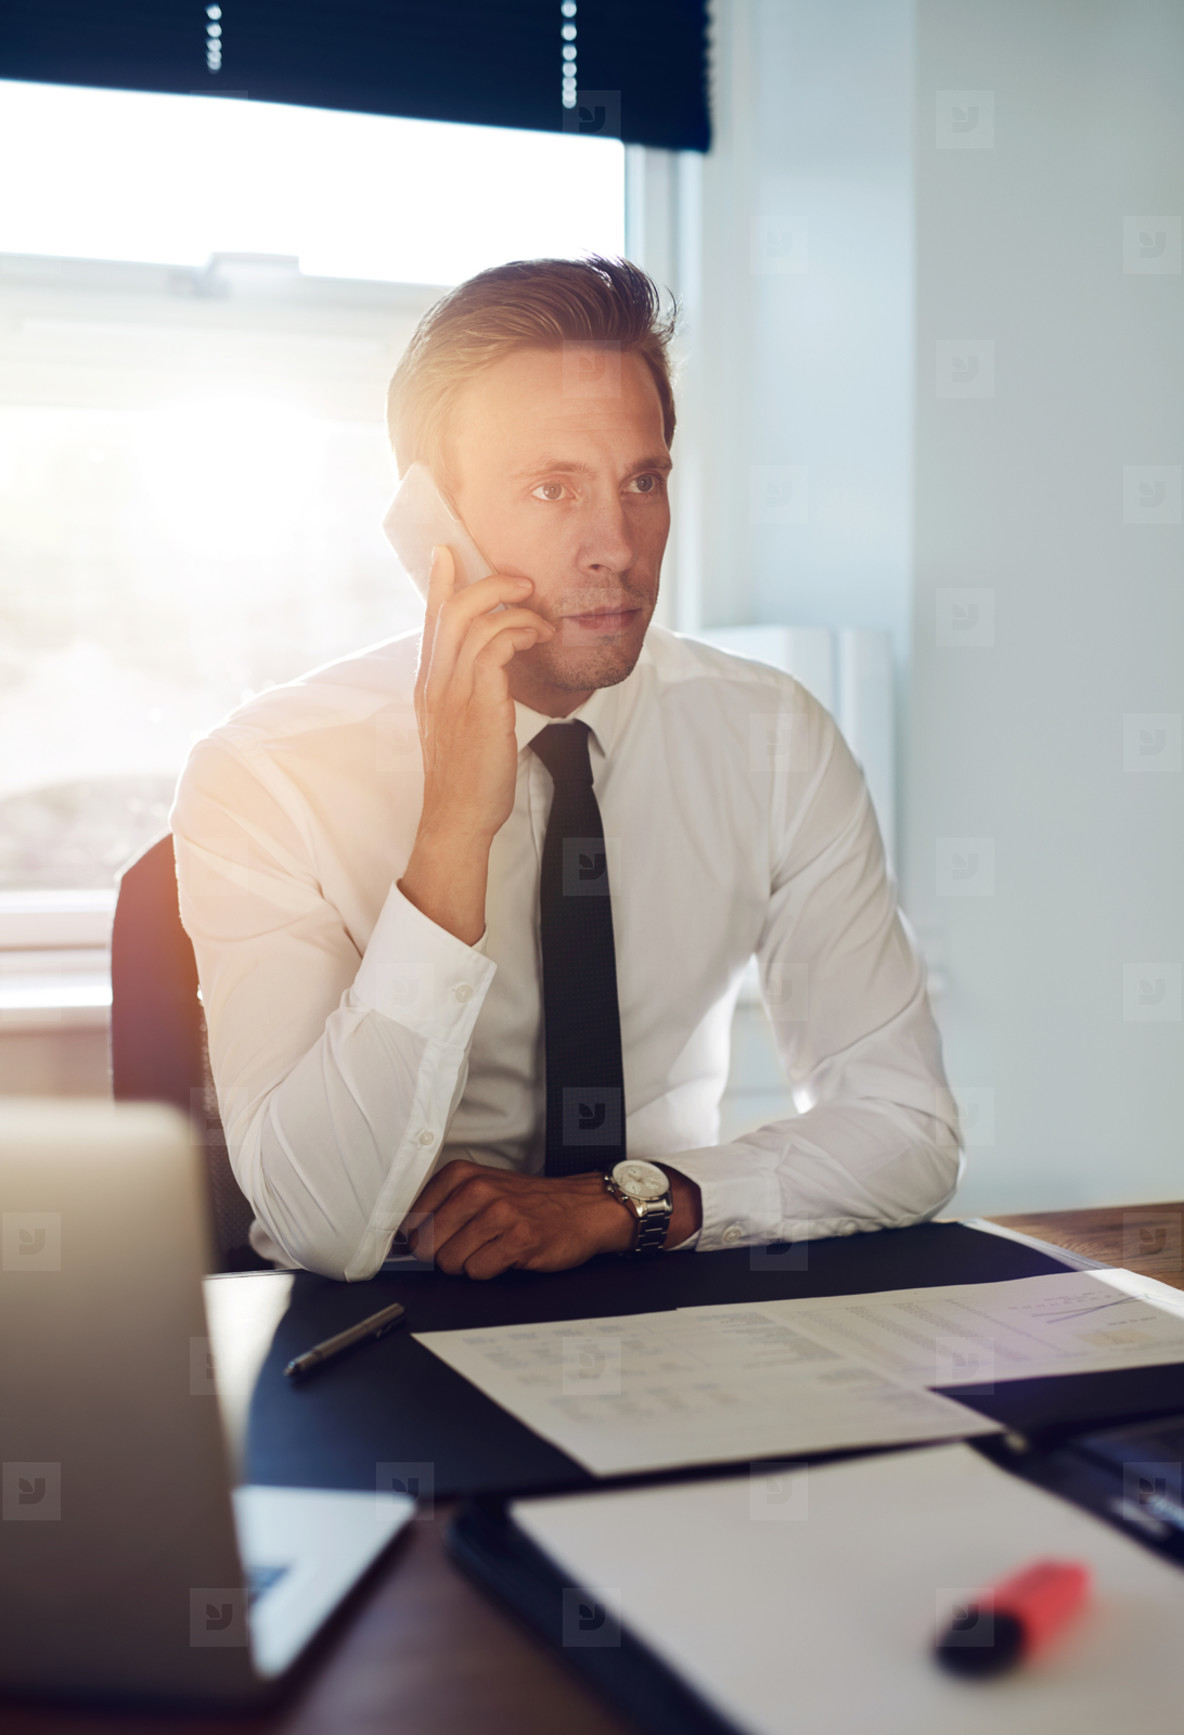 Business man having a conversation on the phone